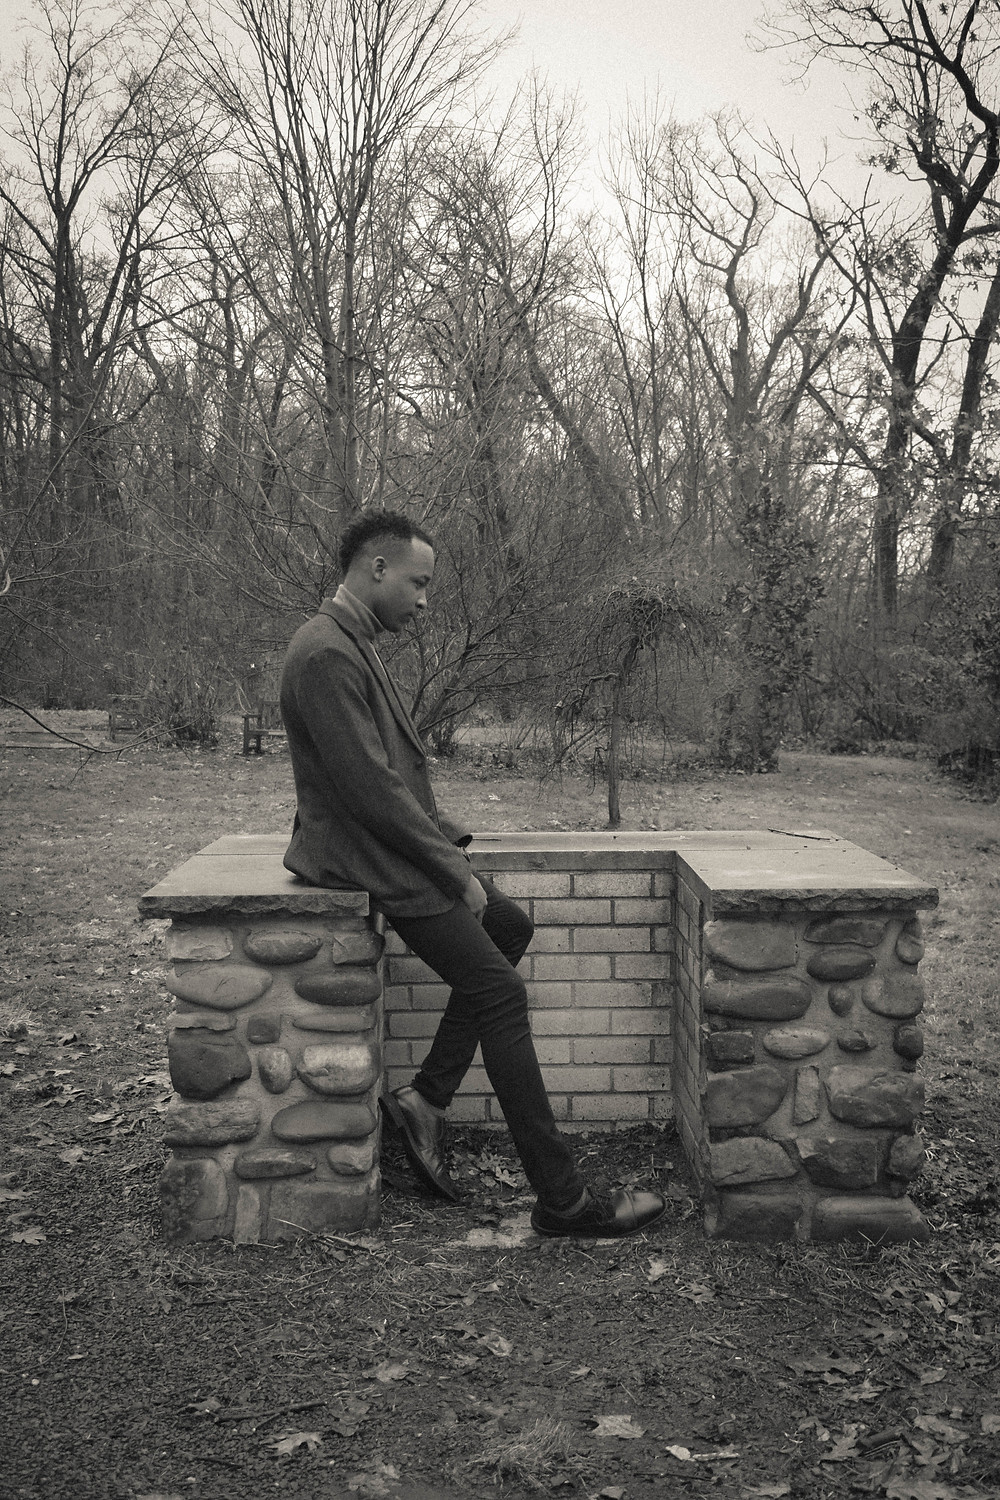 NEXT UP: Saint Alexvnder. Producer from/based in New Jersey. Photography by Dreina Bautista